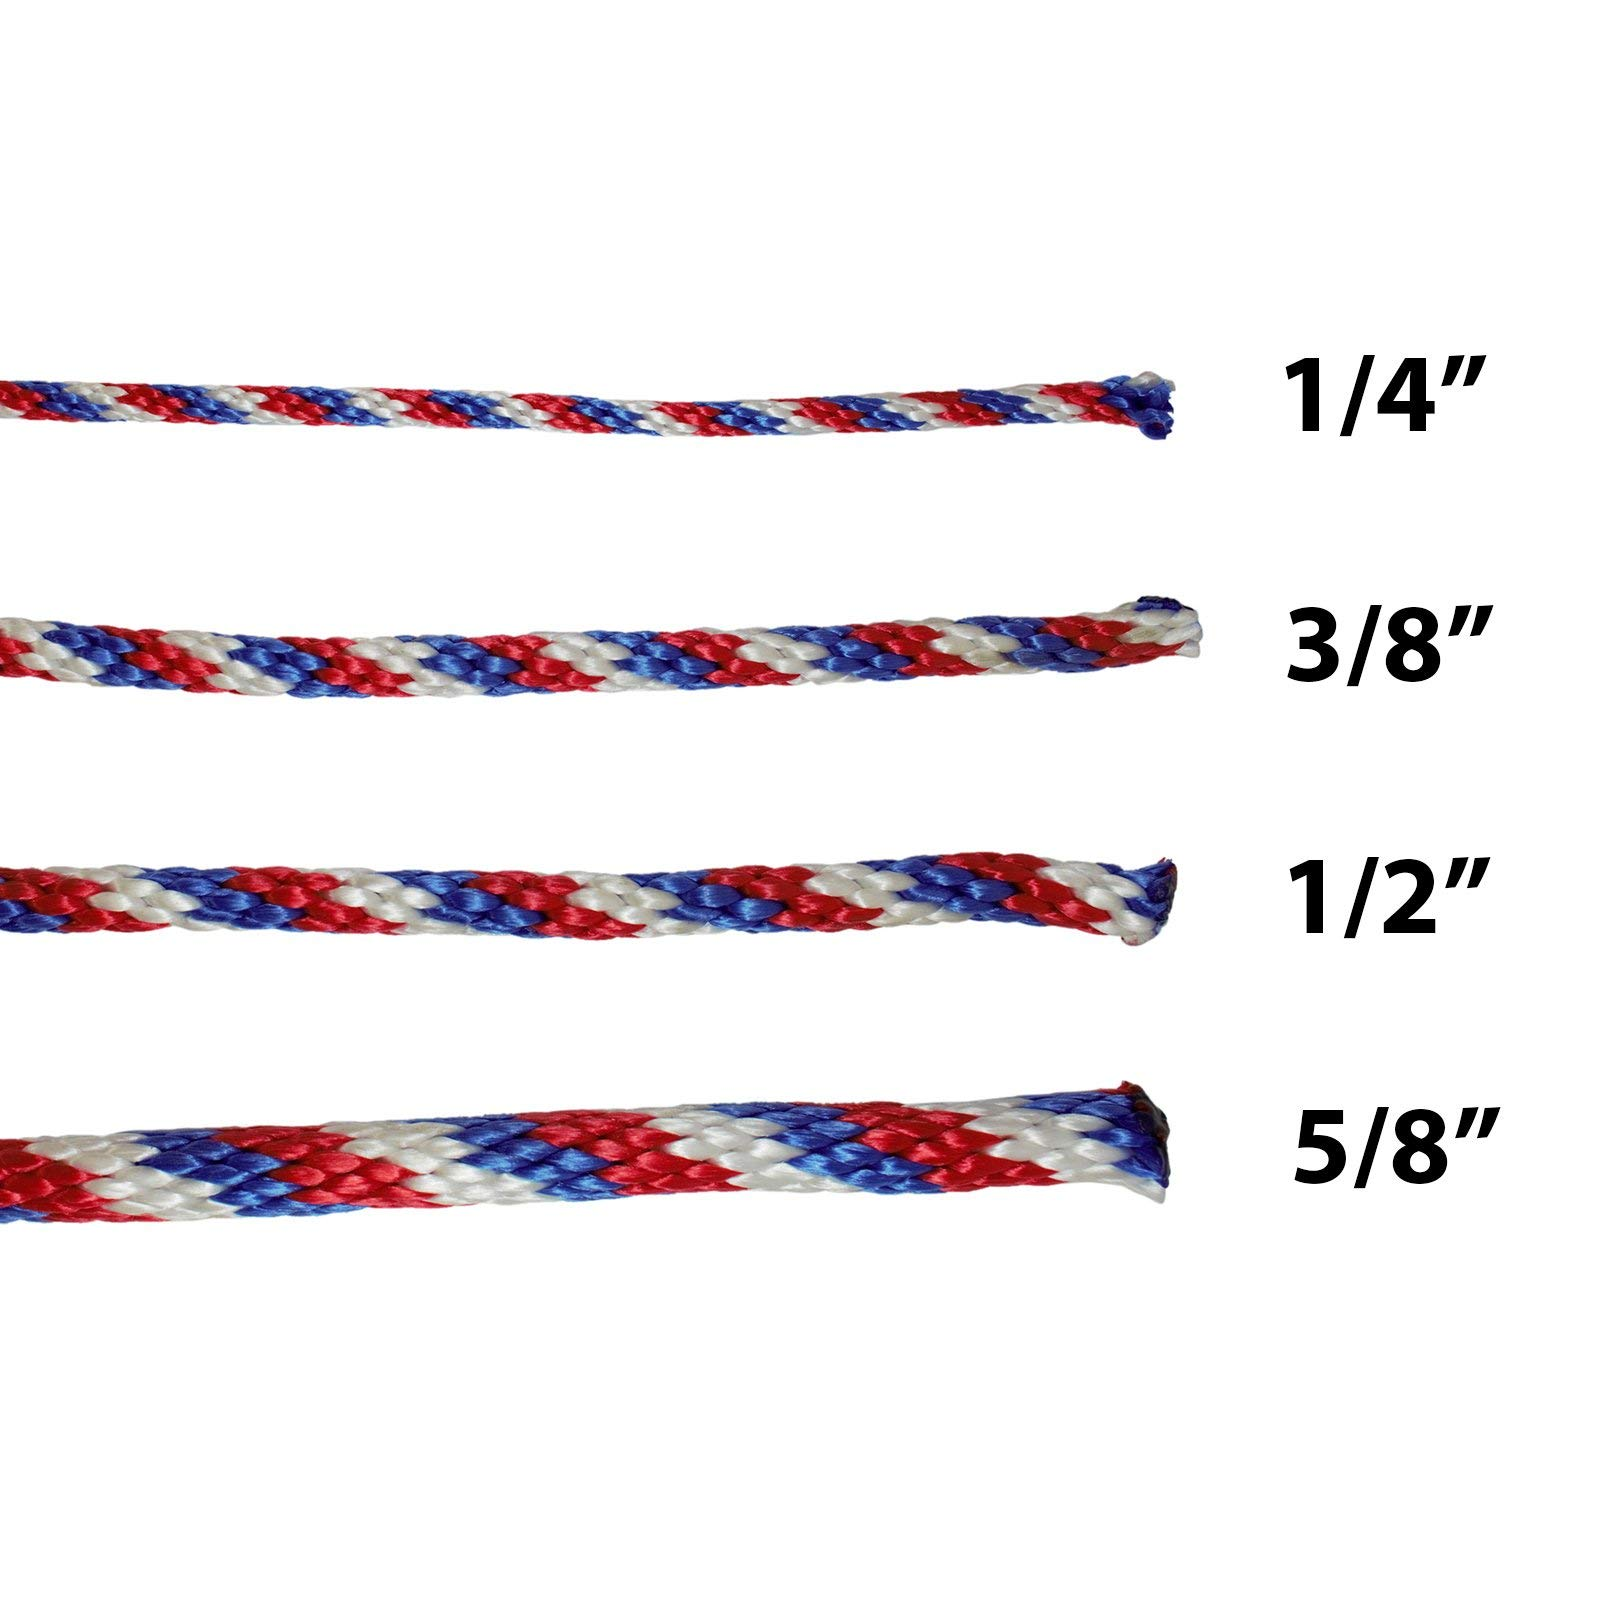 Multifilament Polypropylene Rope - Derby Rope (1/2 inch) Solid Braid - SGT KNOTS - Soft Touch MFP Floating Line - Boating, Docks, Animal Handling, Theater, Crafting (500 feet - RedWhiteBlue) by SGT KNOTS